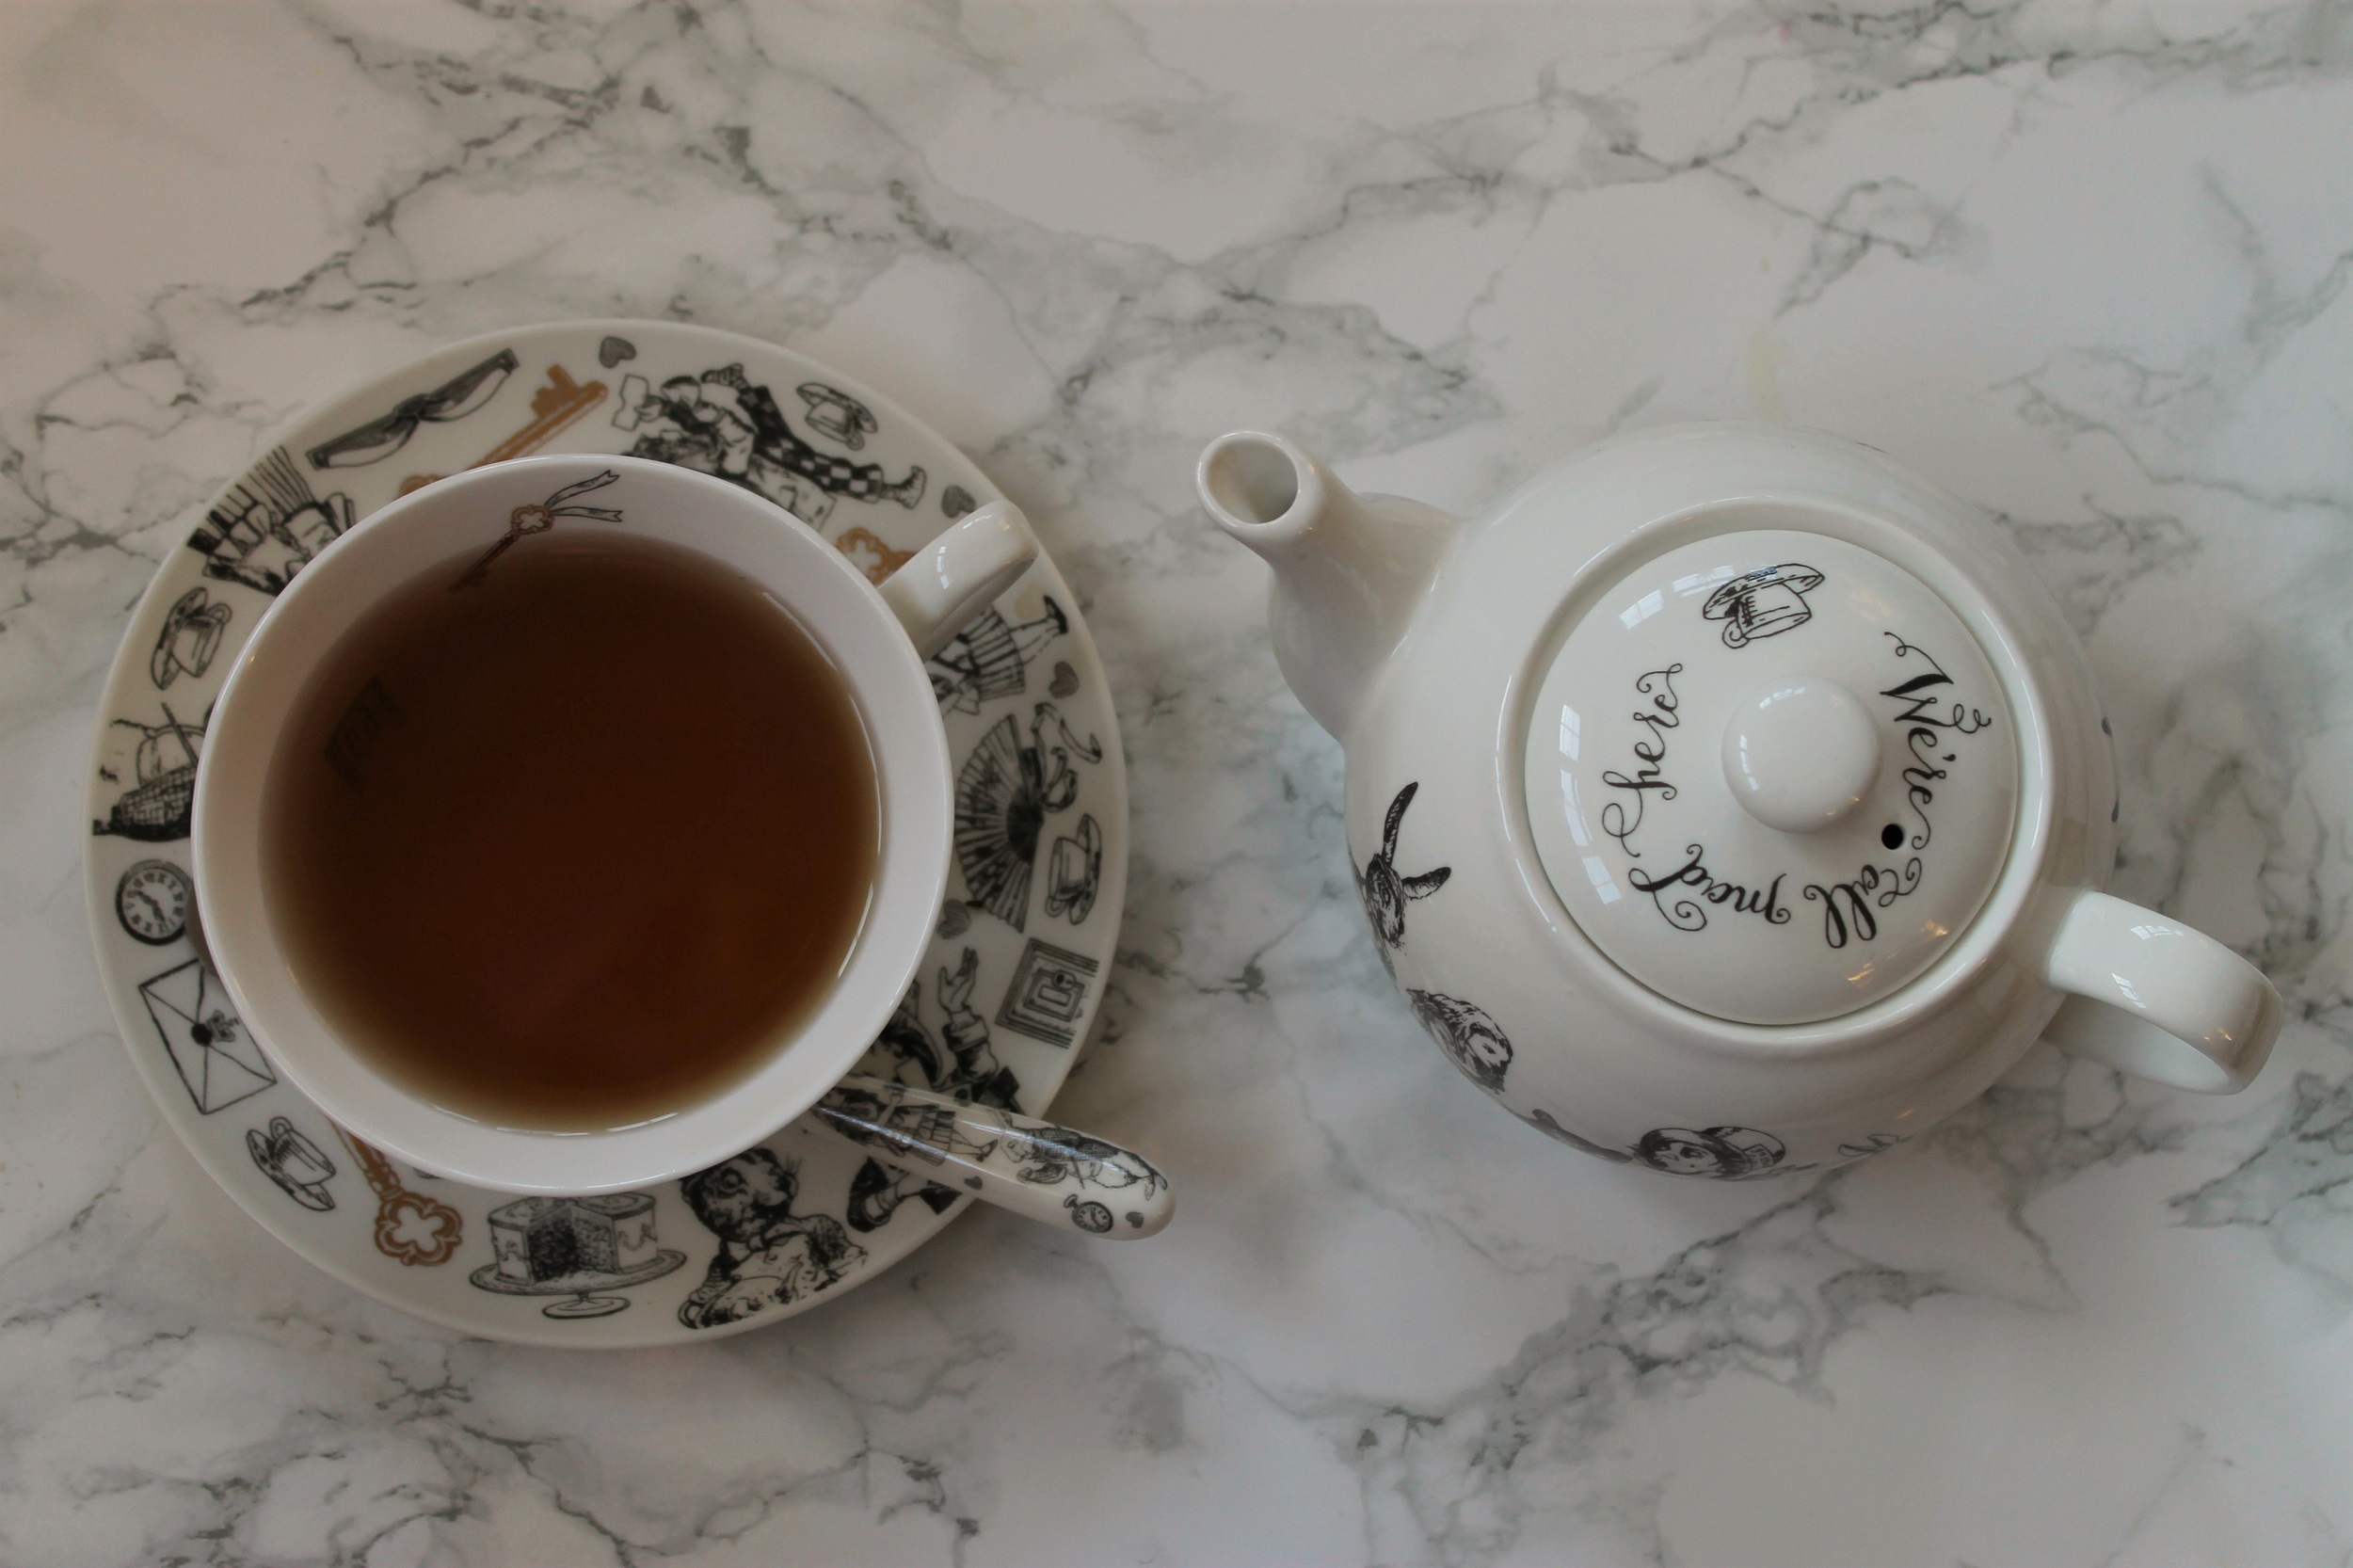 alice in wonderland teapot and teacup with black tea